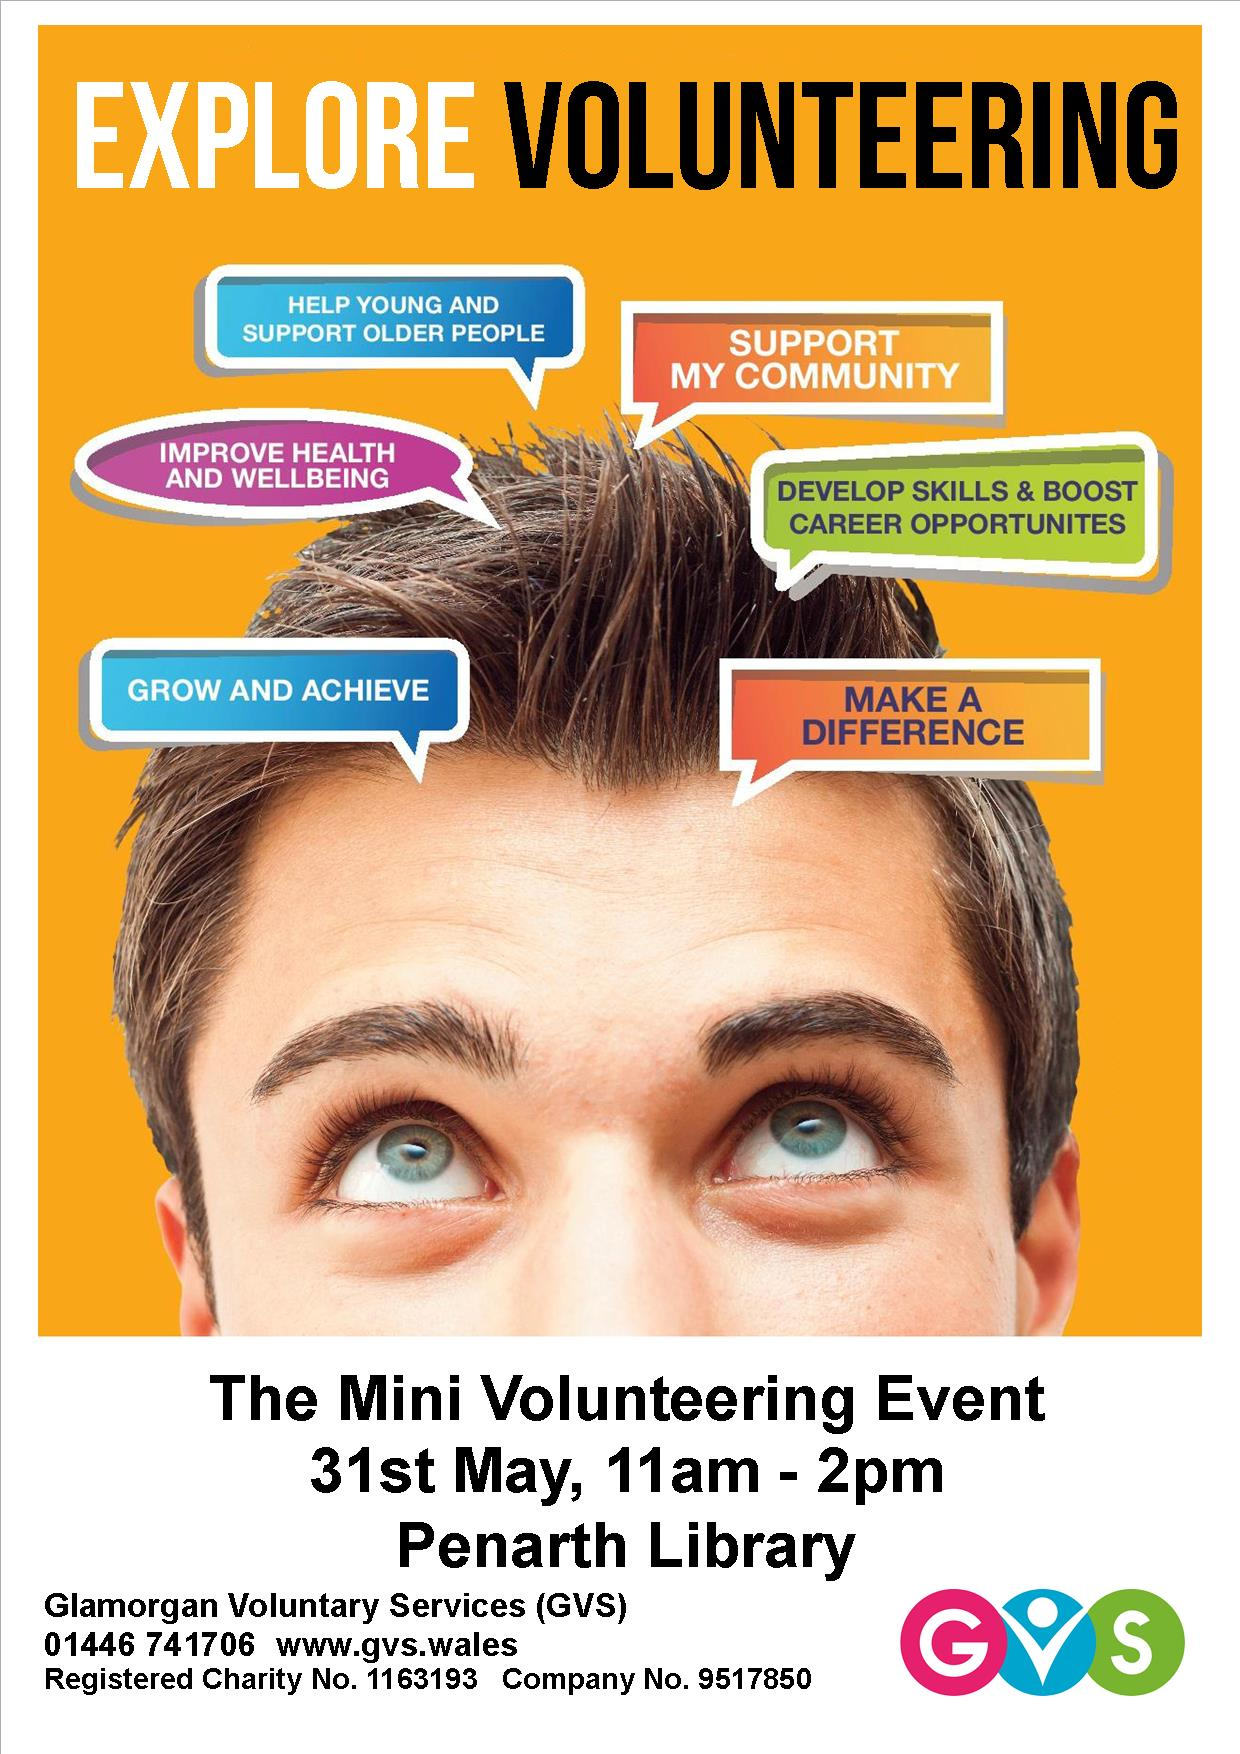 GVS' Mini Volunteering Event in Penarth Library